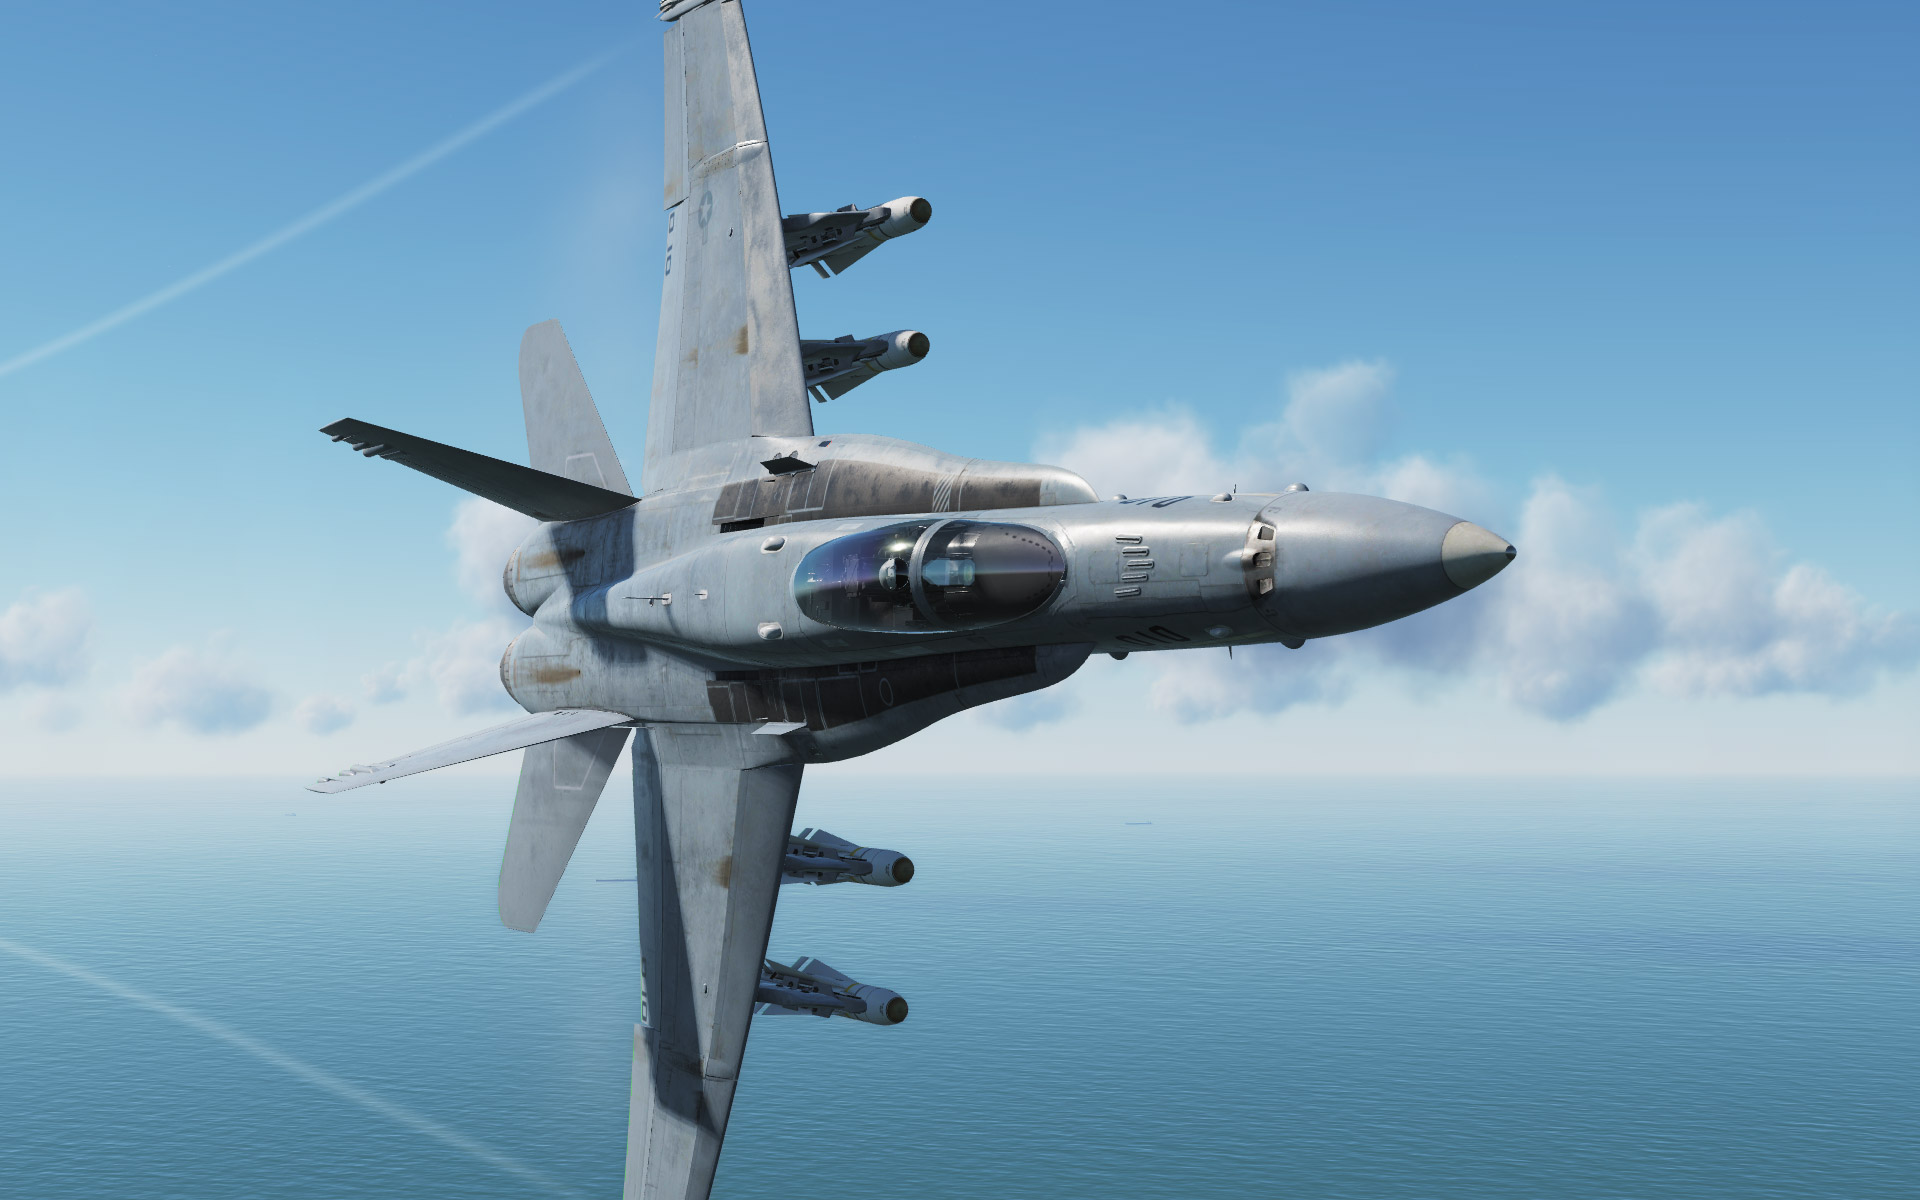 Looking forward to DCS World in 2019 – Stormbirds